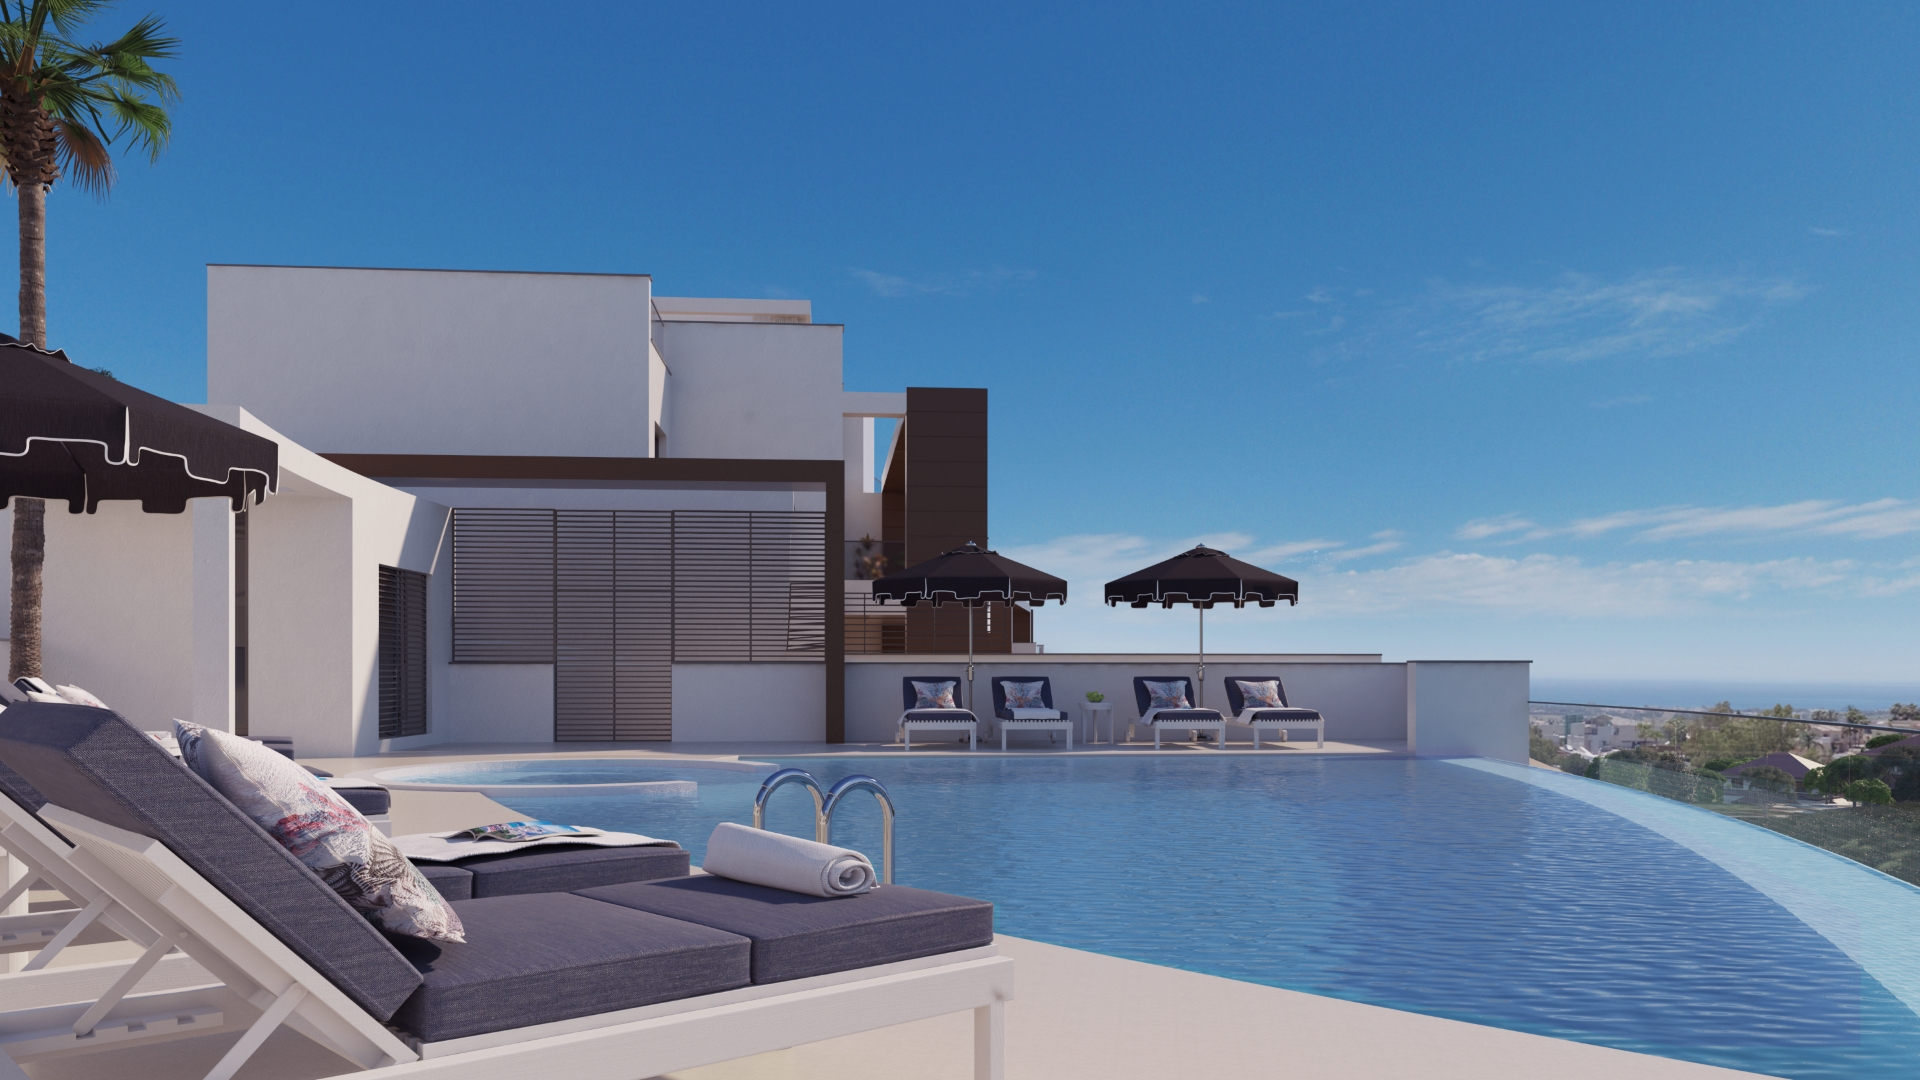 Alborada Homes - New development of off plan apartments and penthouses at Benahavis